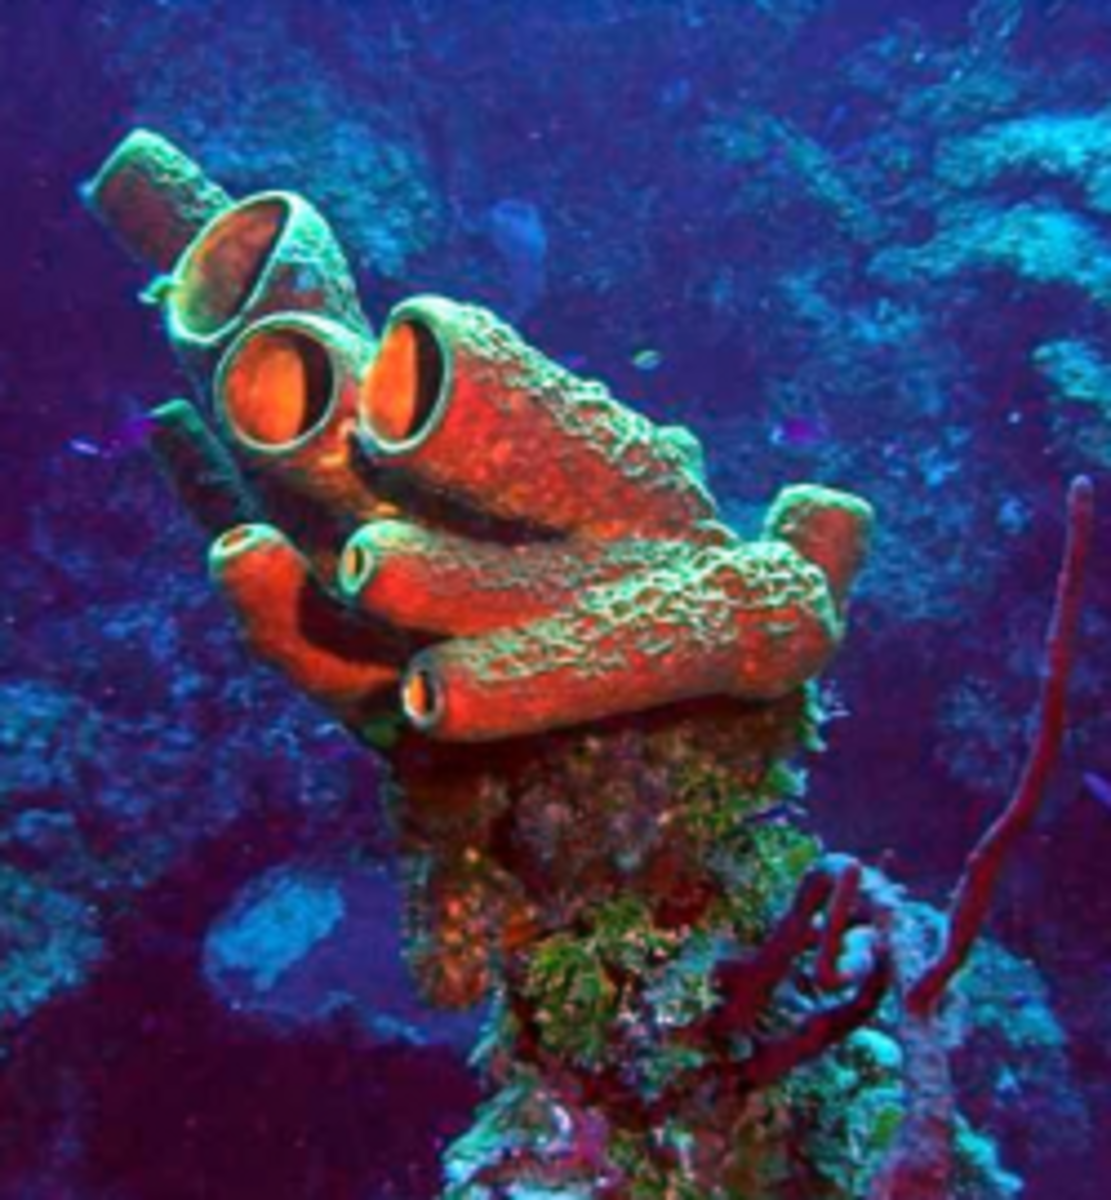 Sponges Are Simple Animals That Live In The Sea (Or Sometimes In Fresh Water)